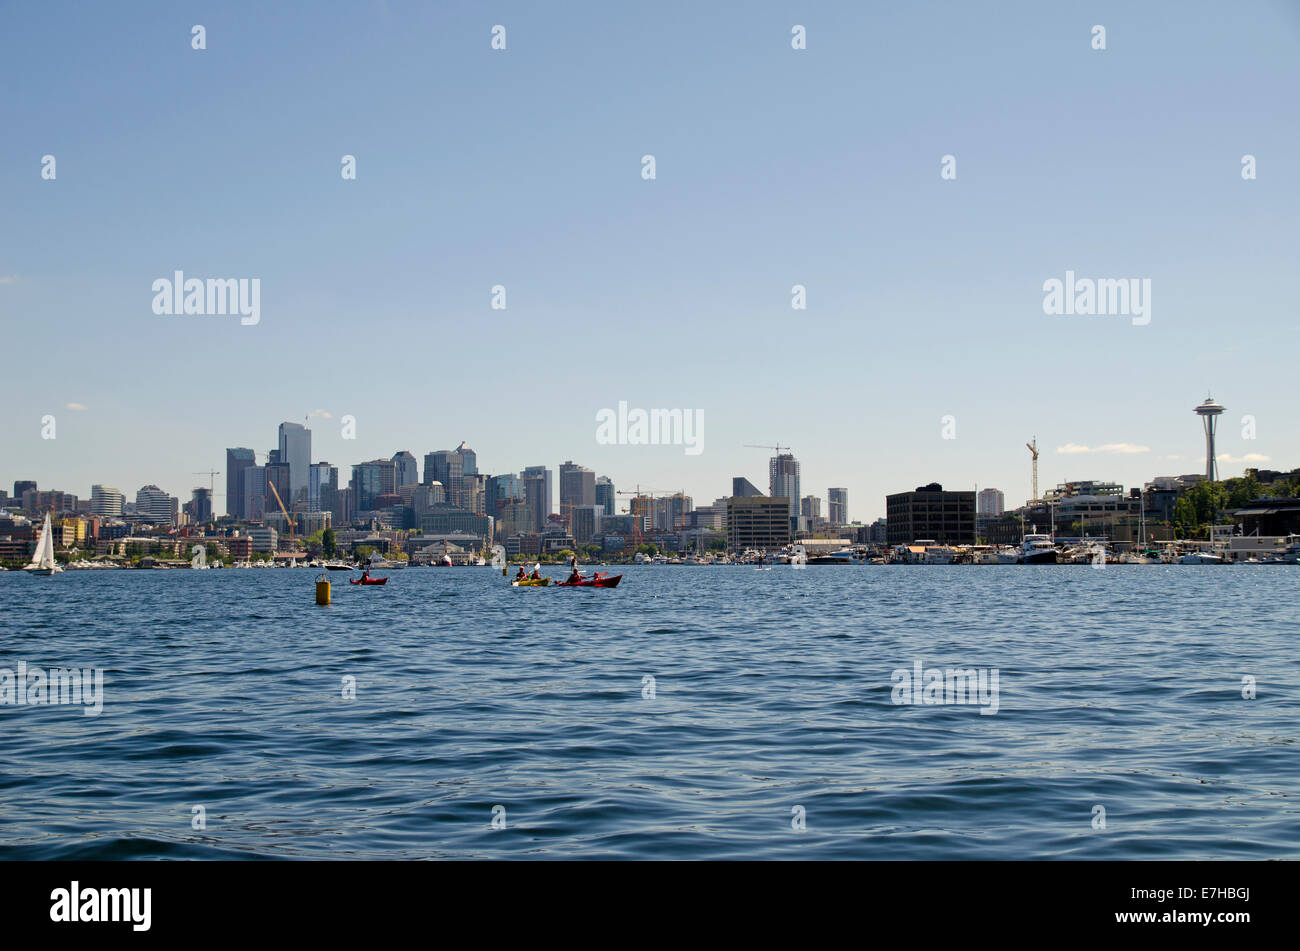 View of skyscrapers from Lake Union, Seattle - Stock Image